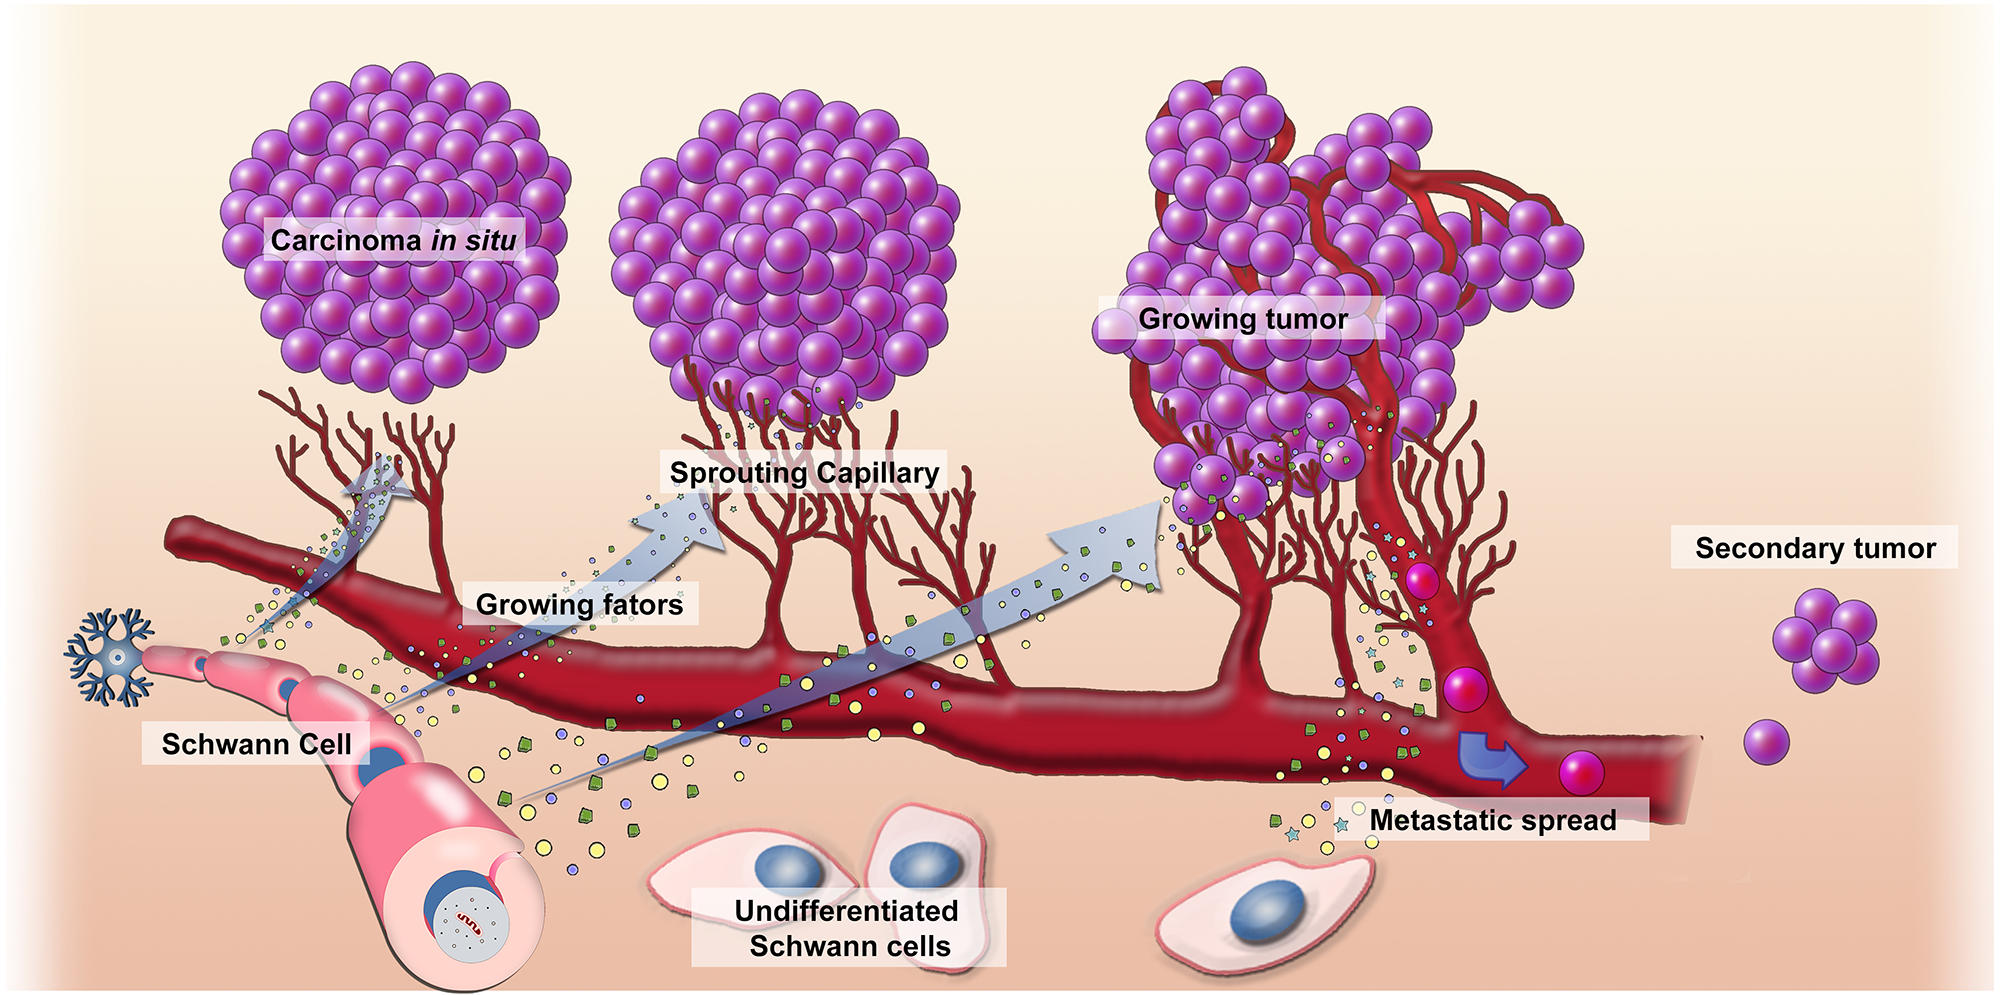 Mechanism of action of Schwann cells in the development of cancer.